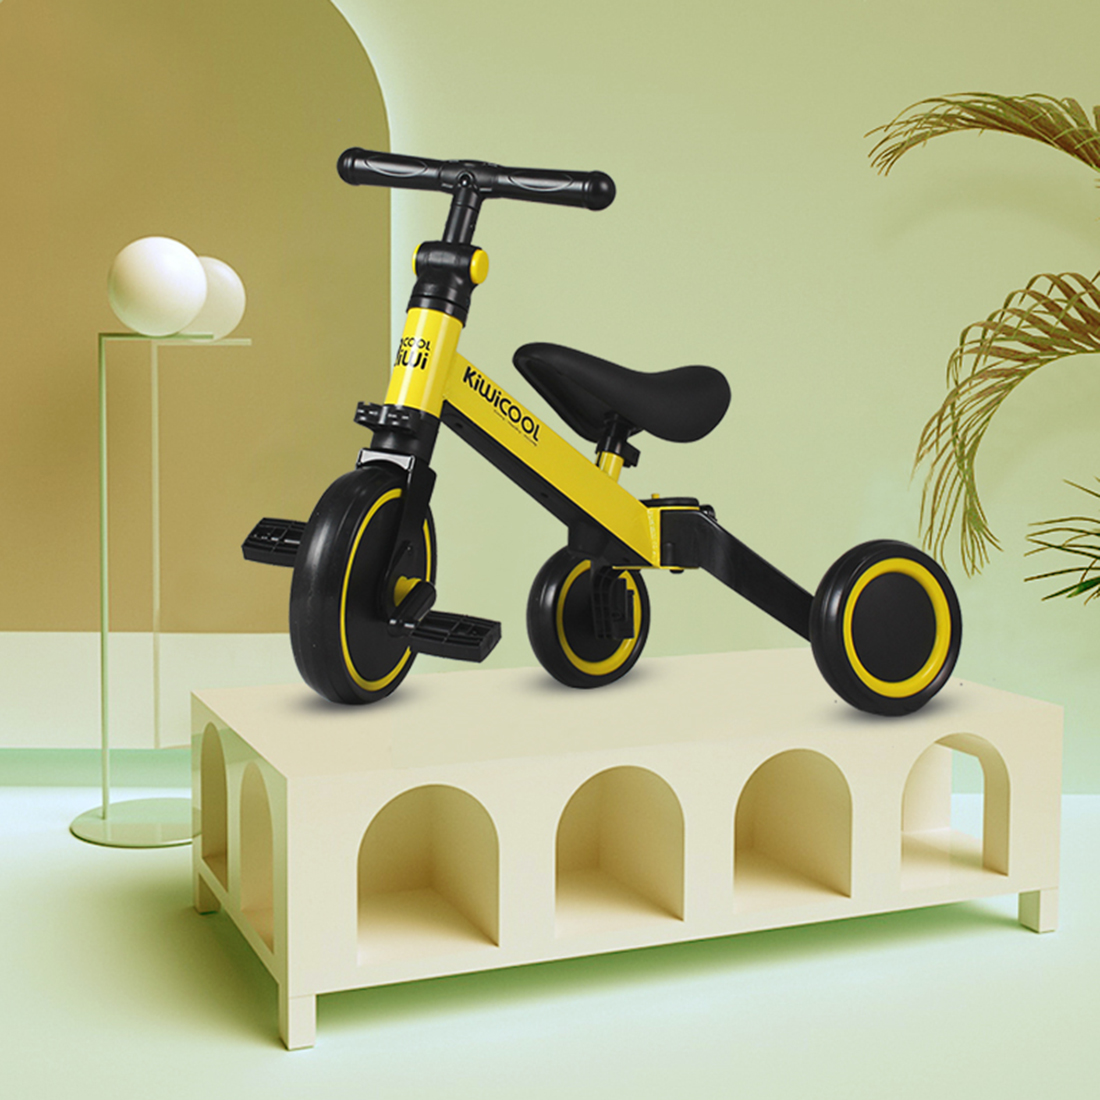 3 in 1 Carbon Steel Kids Tricycles Balance Bike Trike Baby walker Toddler Outdoor Riding Bicycle Innrech Market.com